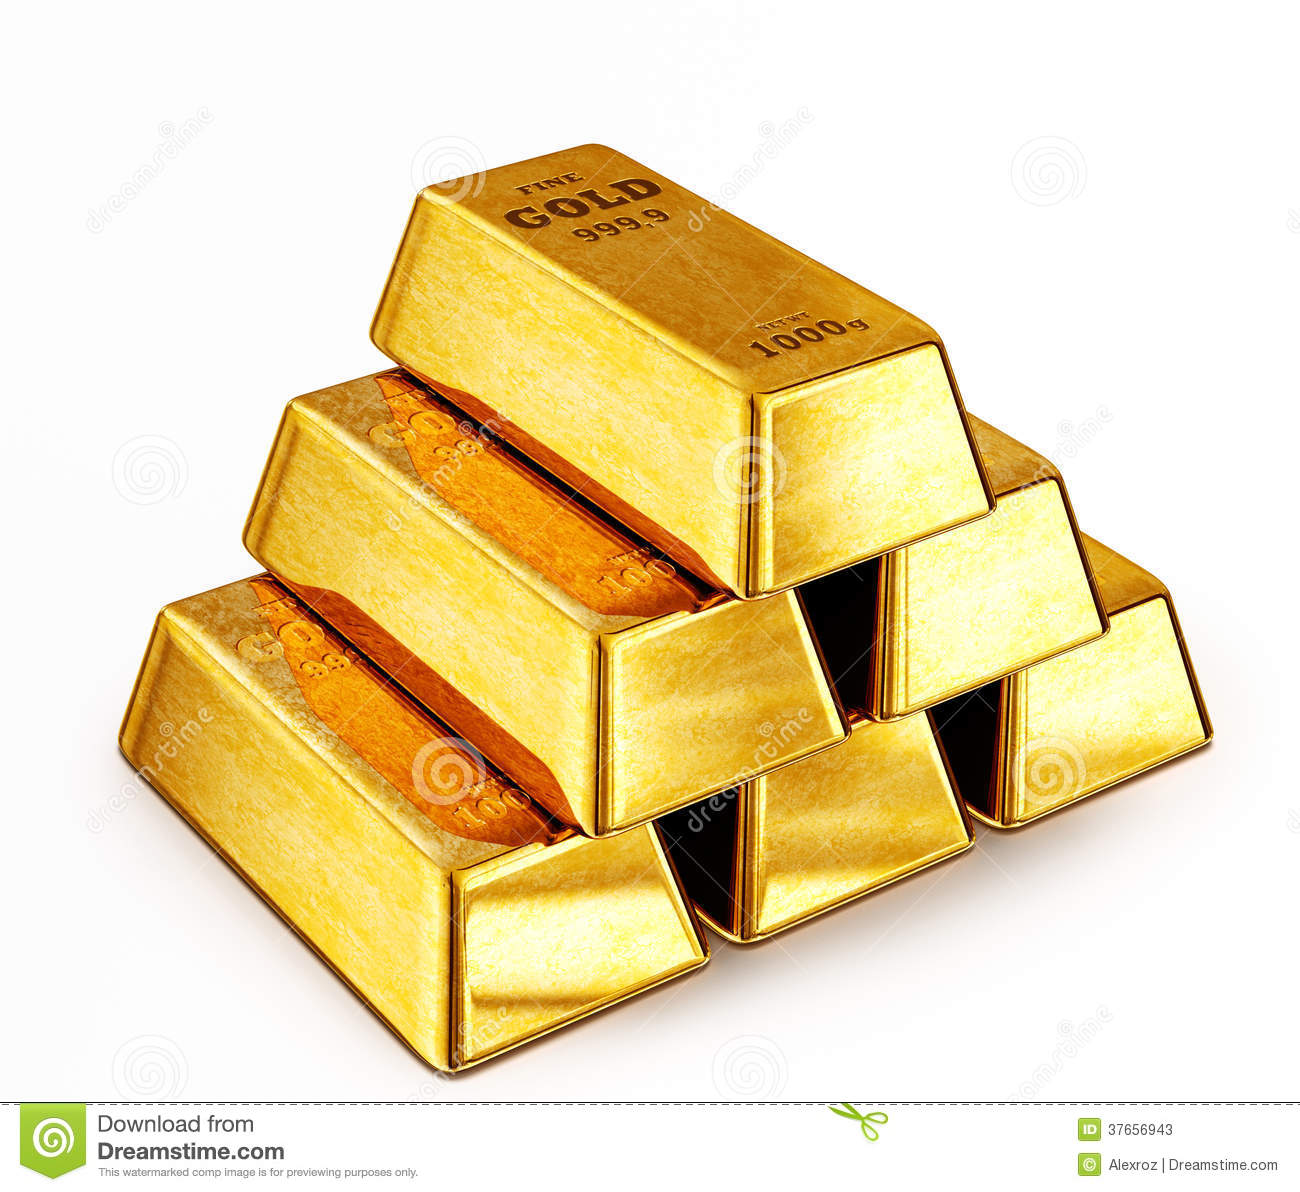 Gold Bars Stock Photos - Image: 37656943